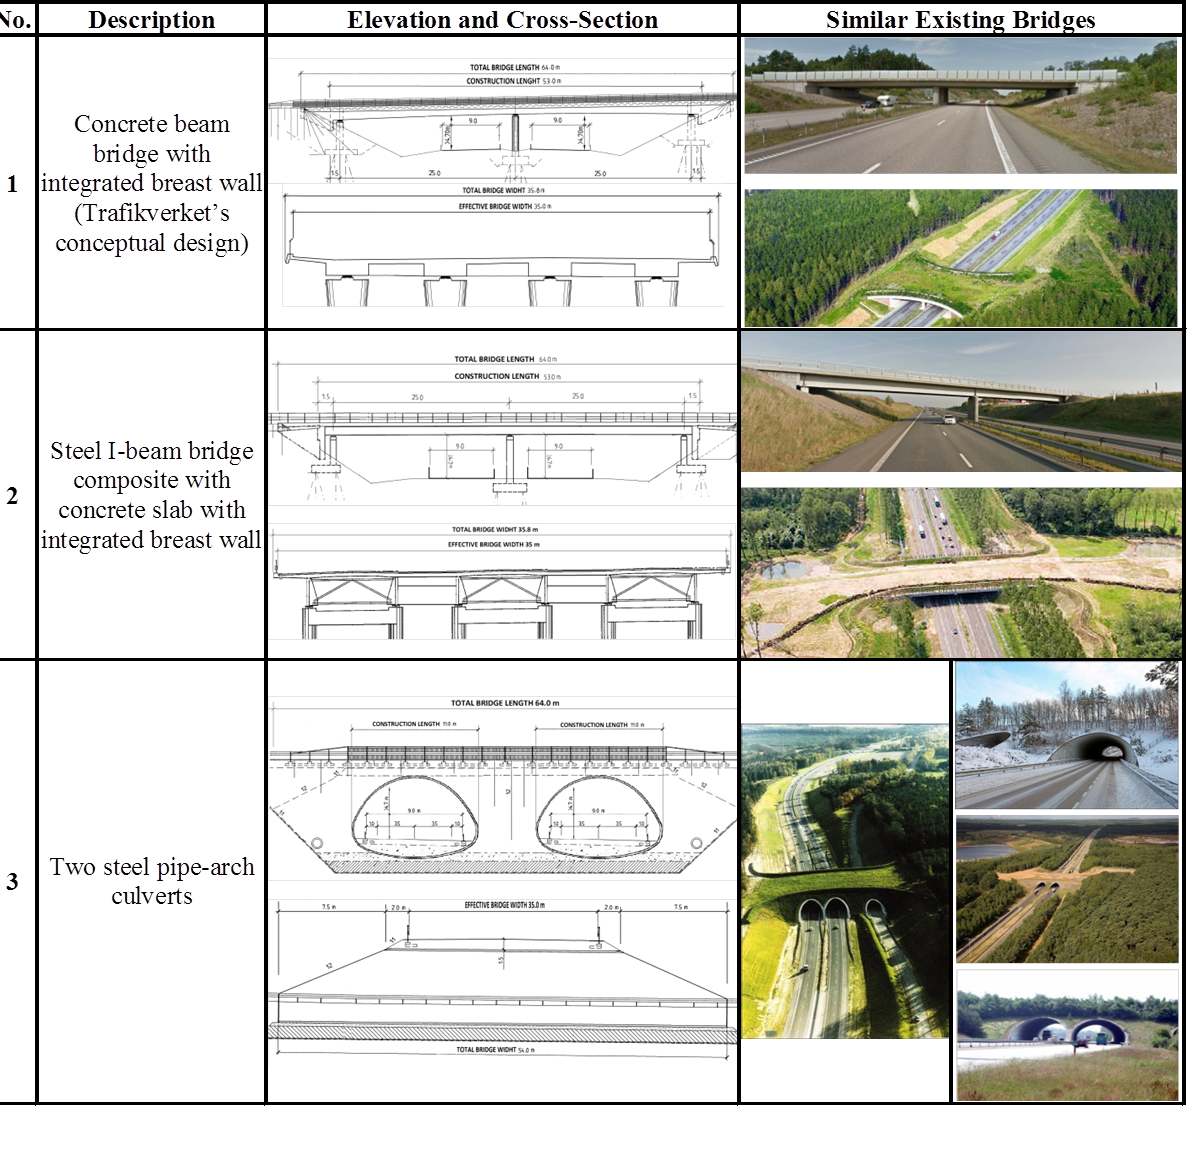 1 Figure 1. Technically feasible proposals and their outlines